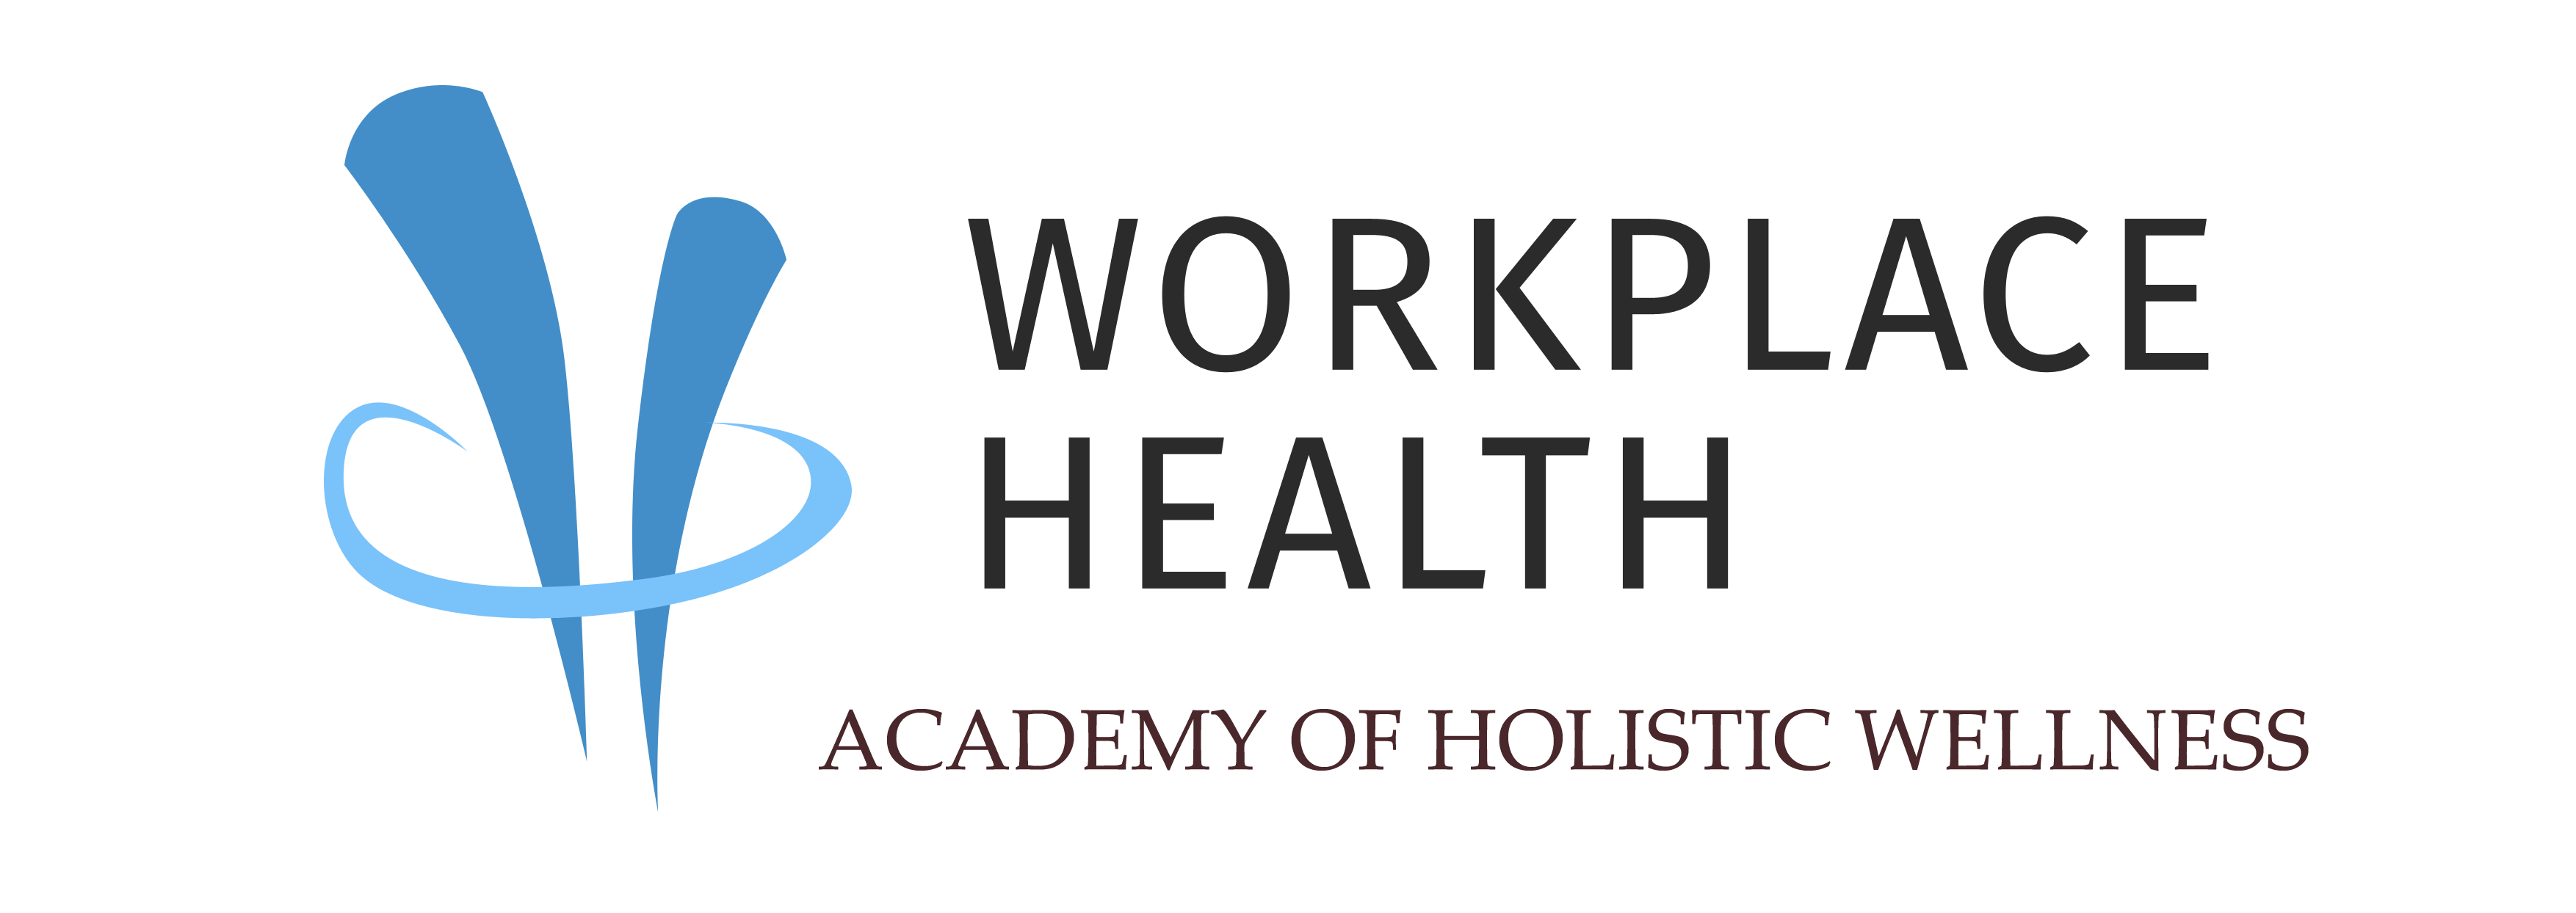 Academy of Holistic Wellness | WorkPlace  Health Singapore | Yoga Singapore | Corporate Yoga